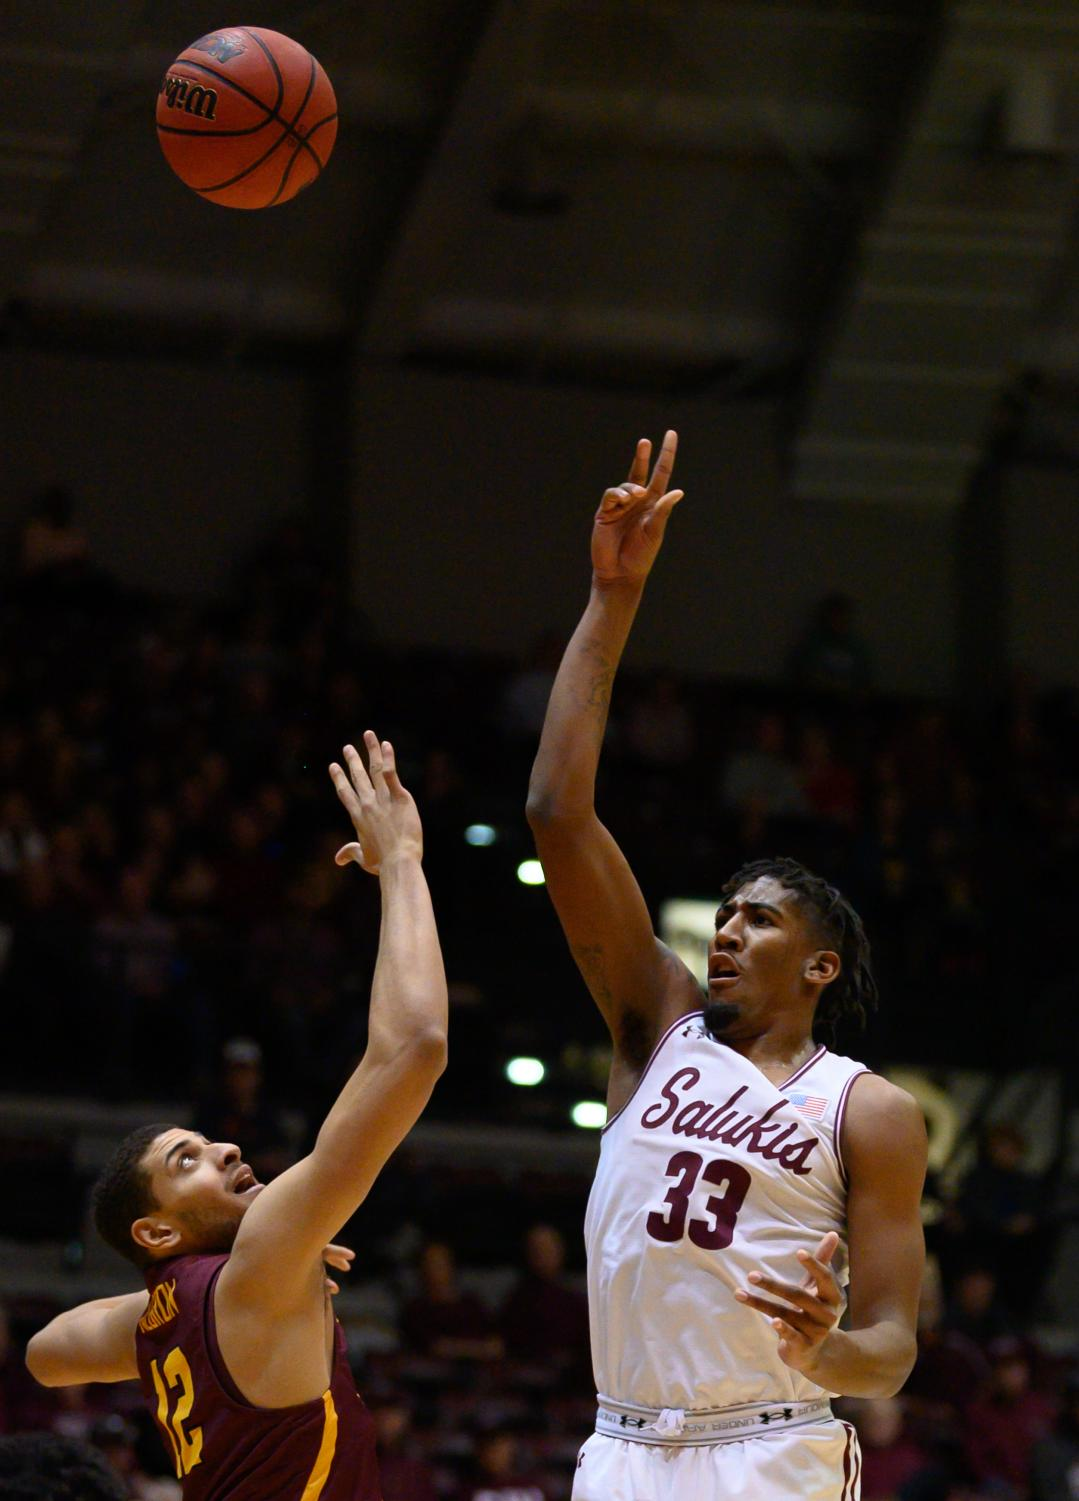 Southern+Illinois+Salukis+center+Kavion+Pippen+goes+for+a+basket+on+Sunday%2C+Feb.+24%2C+2019%2C+during+a+matchup+between+the+Southern+Illinois+Salukis+and+the+Loyola+Ramblers+at+SIU+Arena.